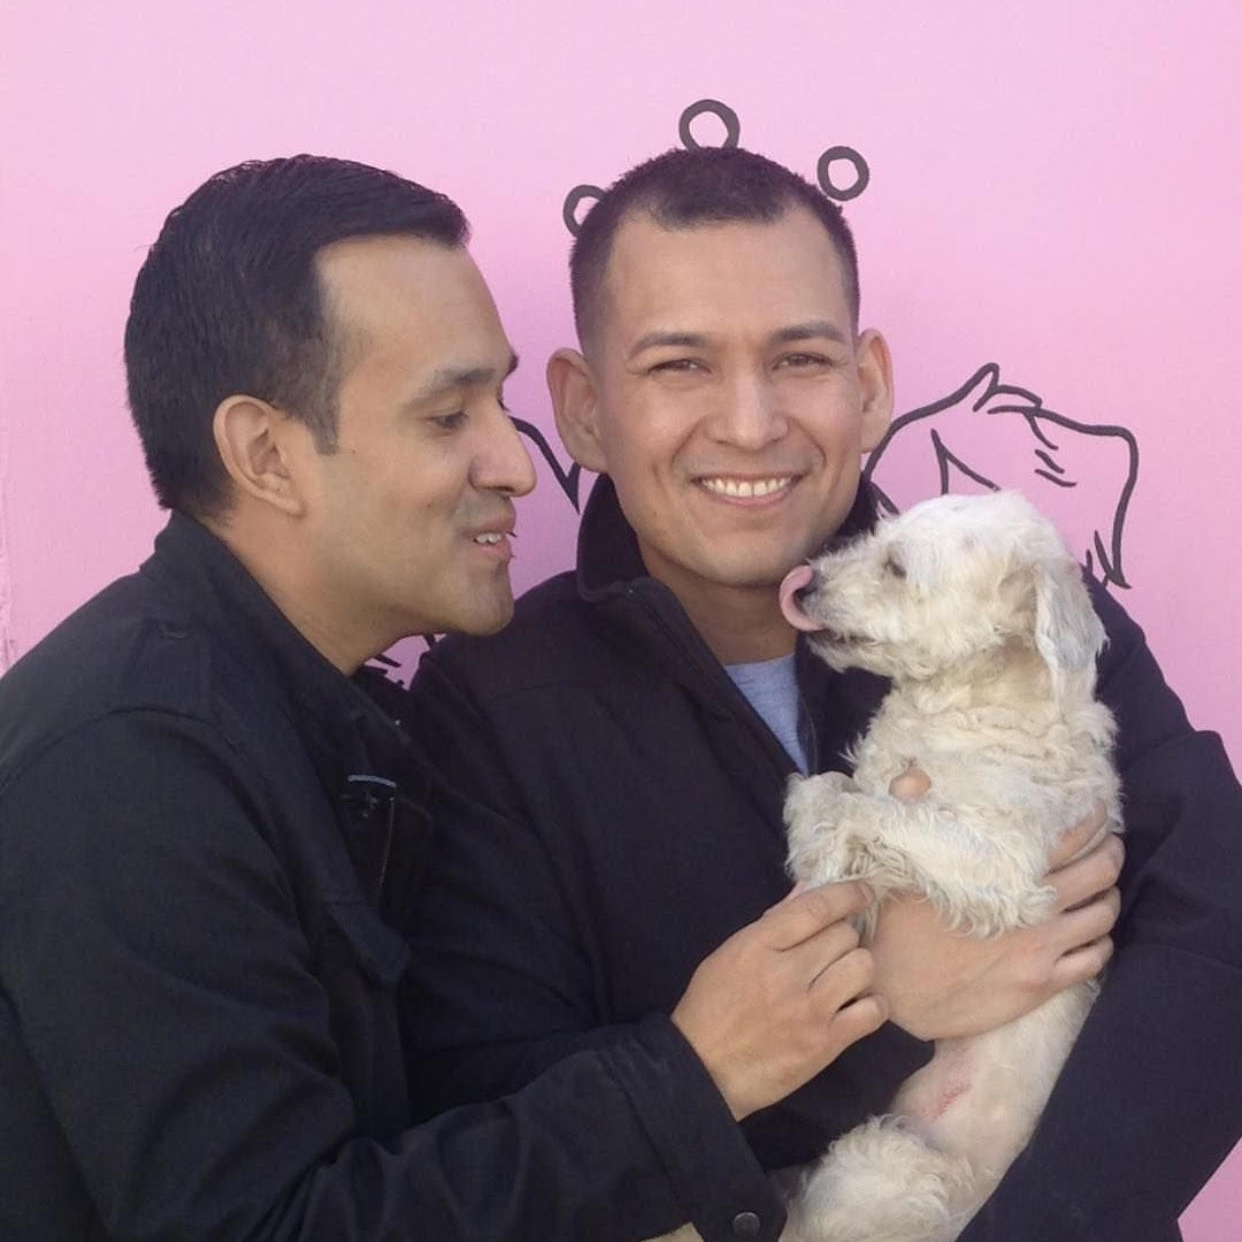 LANA WAS THROWN FROM A CAR AND INJURED BUT HER NEW DADS ARE SO IN LOVE WITH HER AND ARE HELPING HER HEAL!